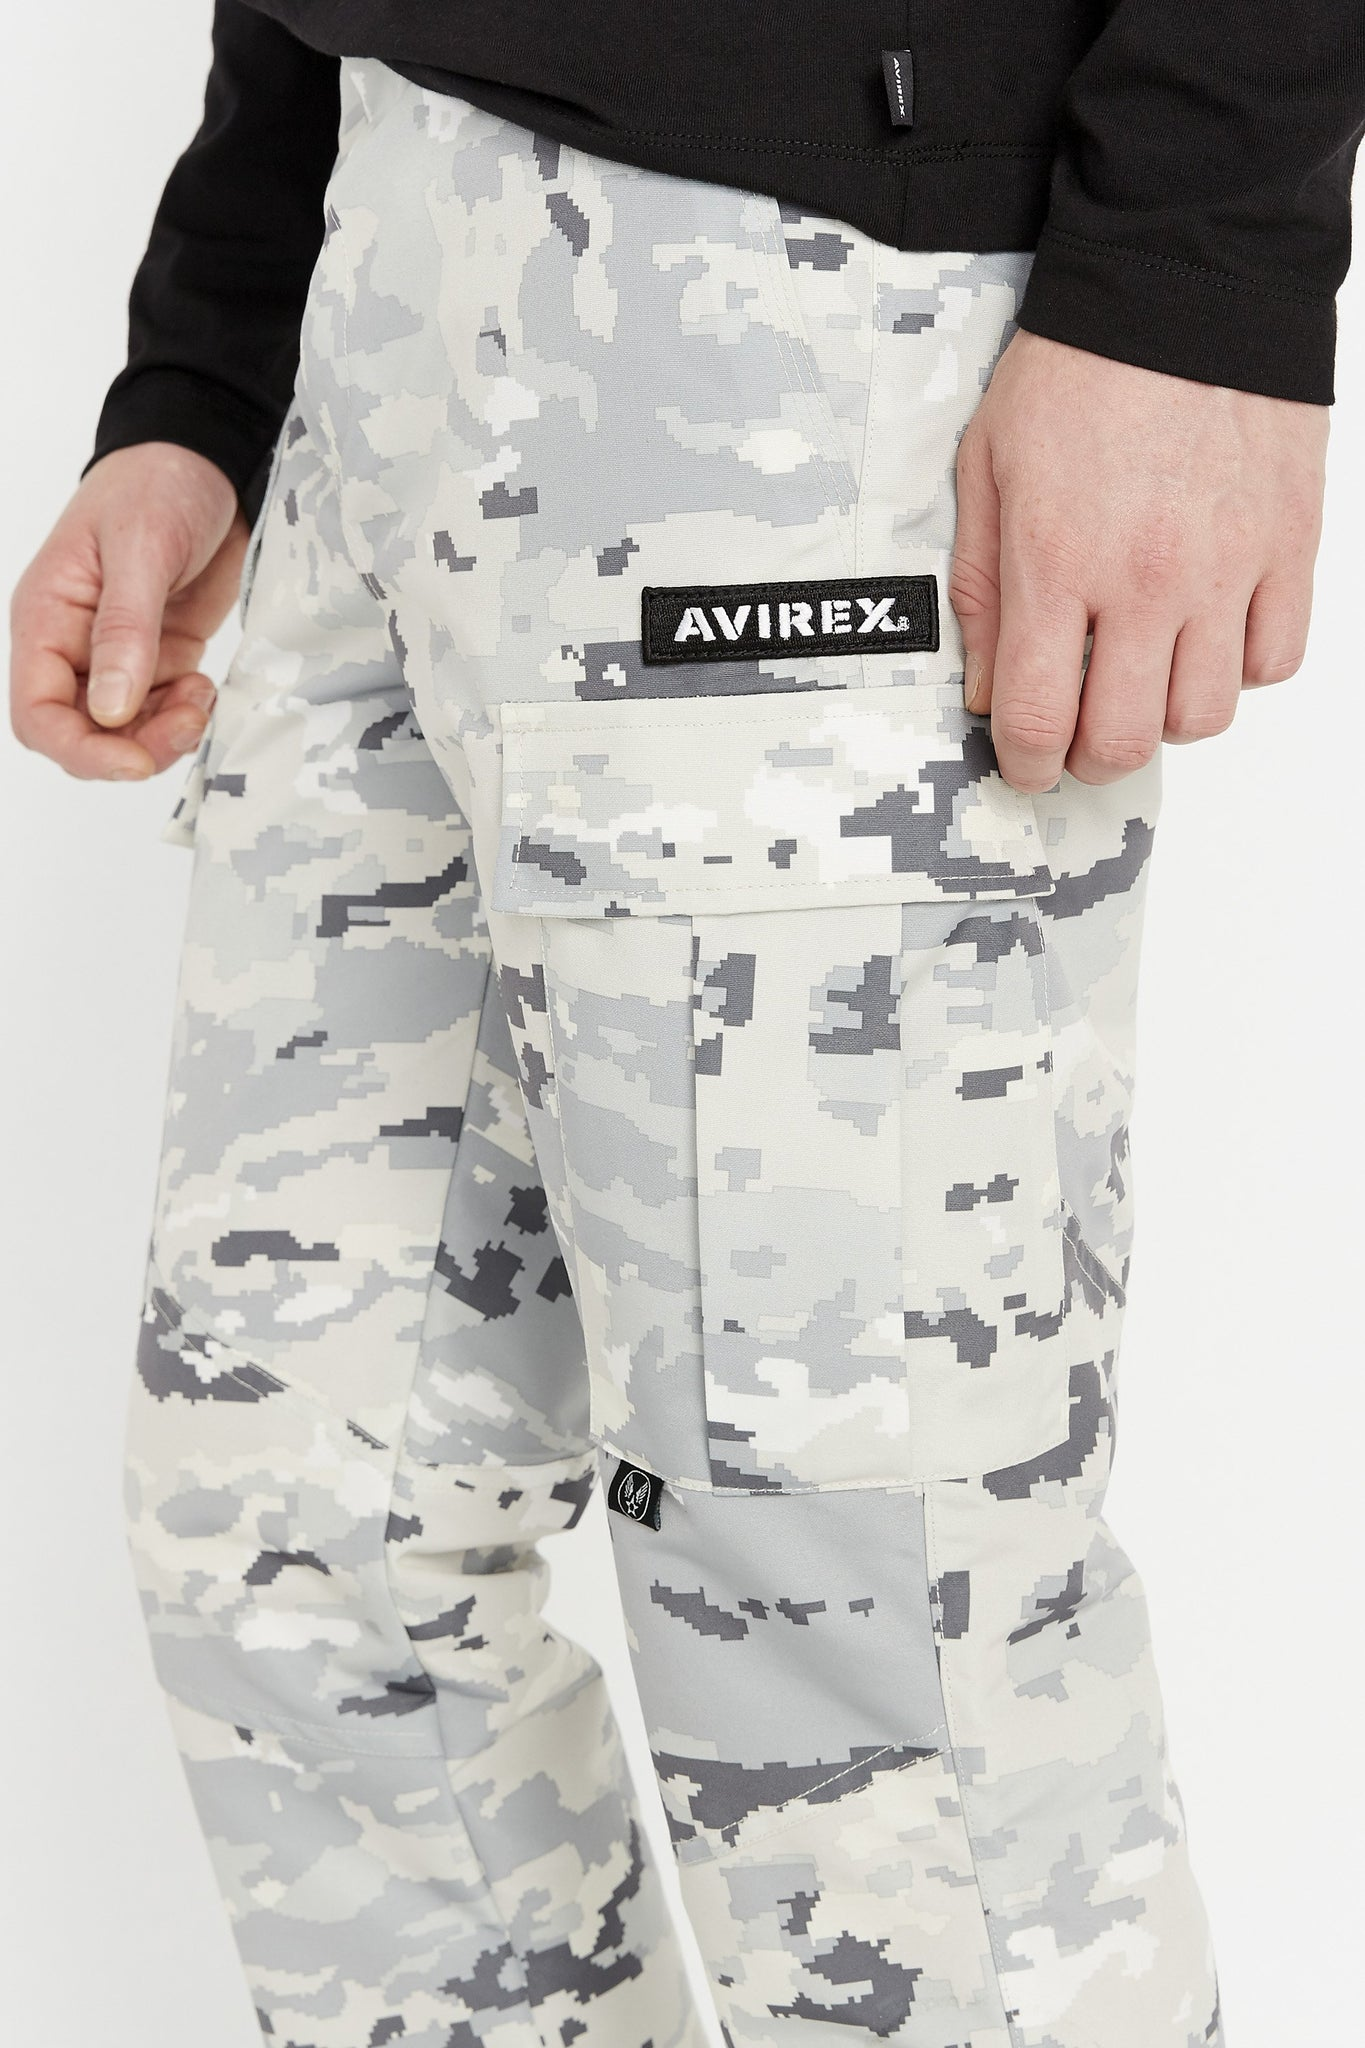 Detailed view of Avirex patch above left side cargo pocket